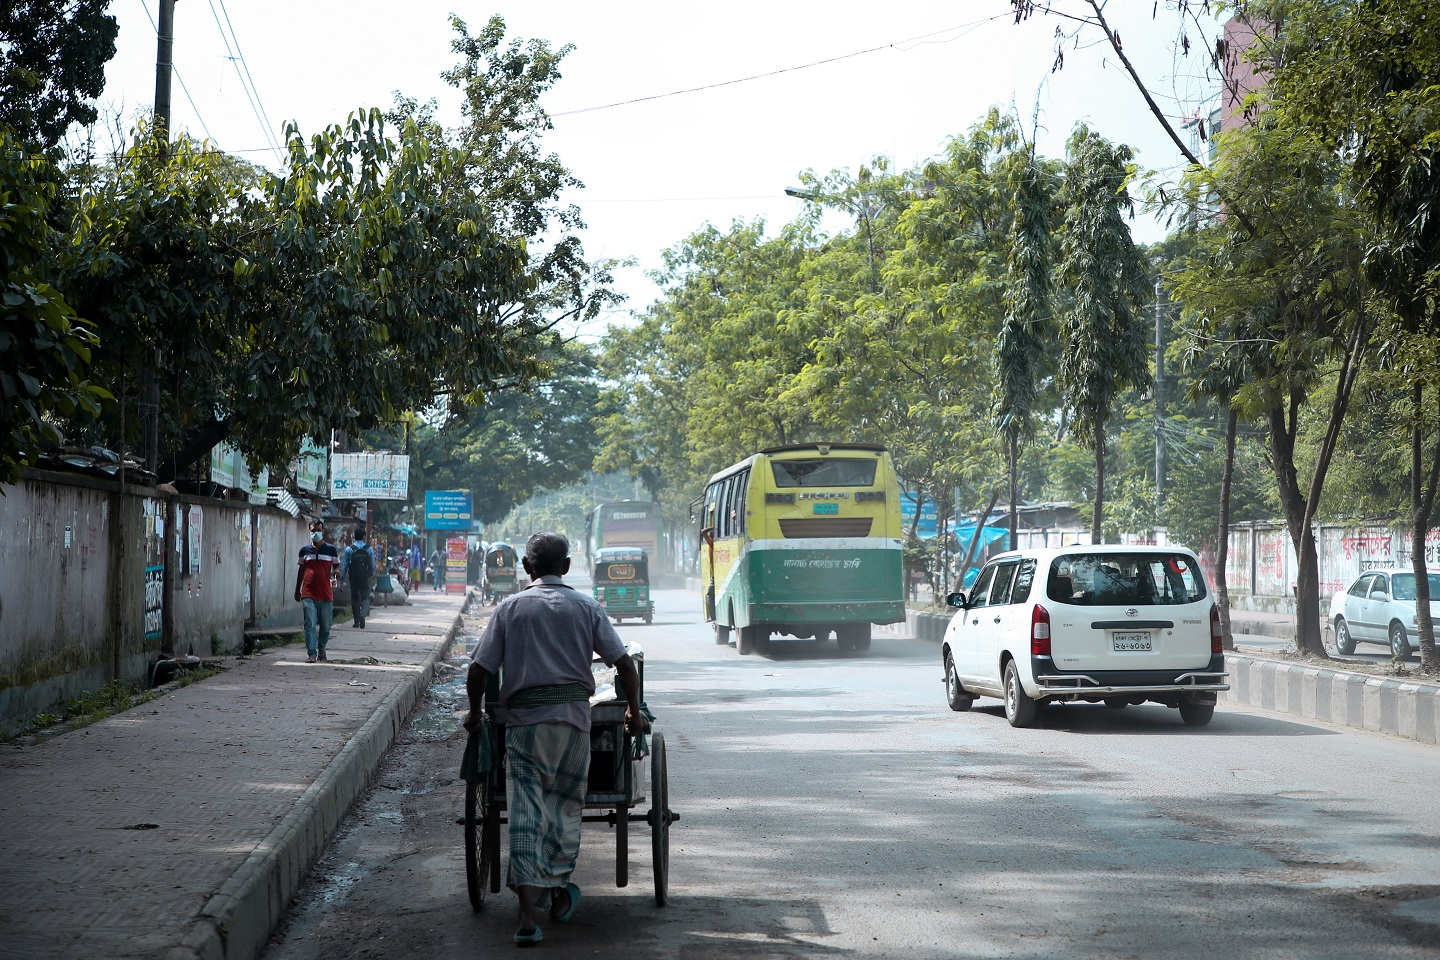 Busy road with Transport - agargaon